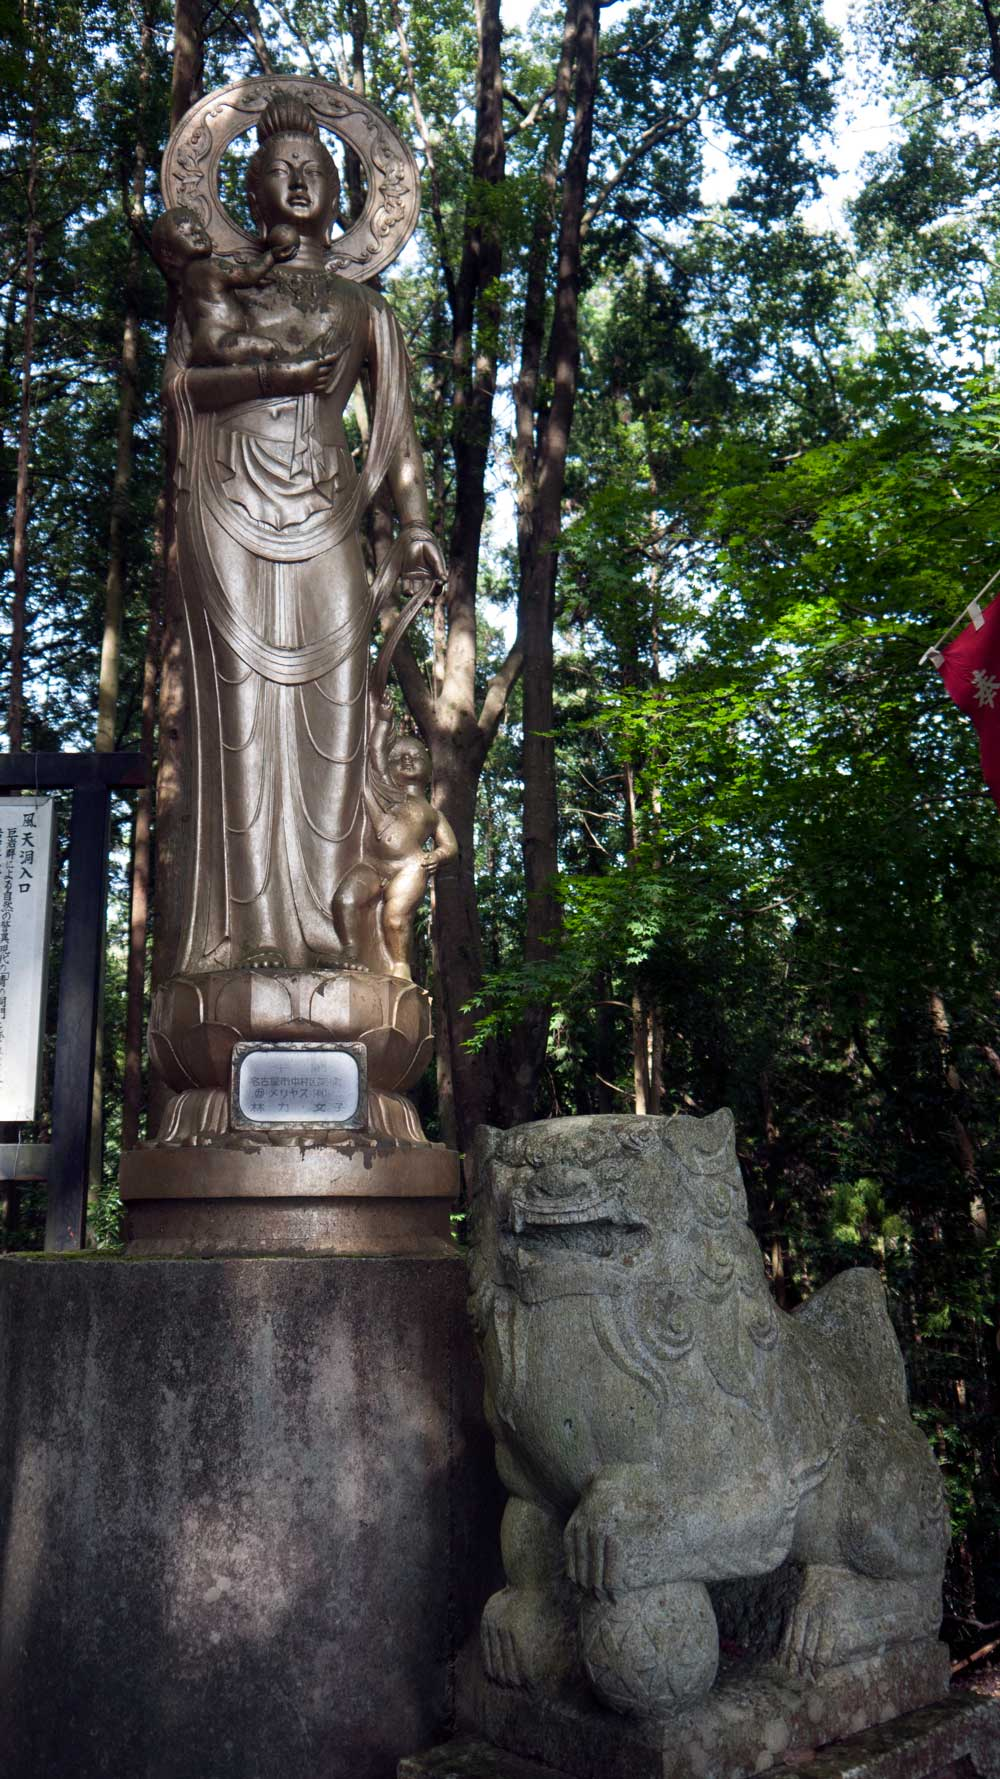 kannon statue with komainu